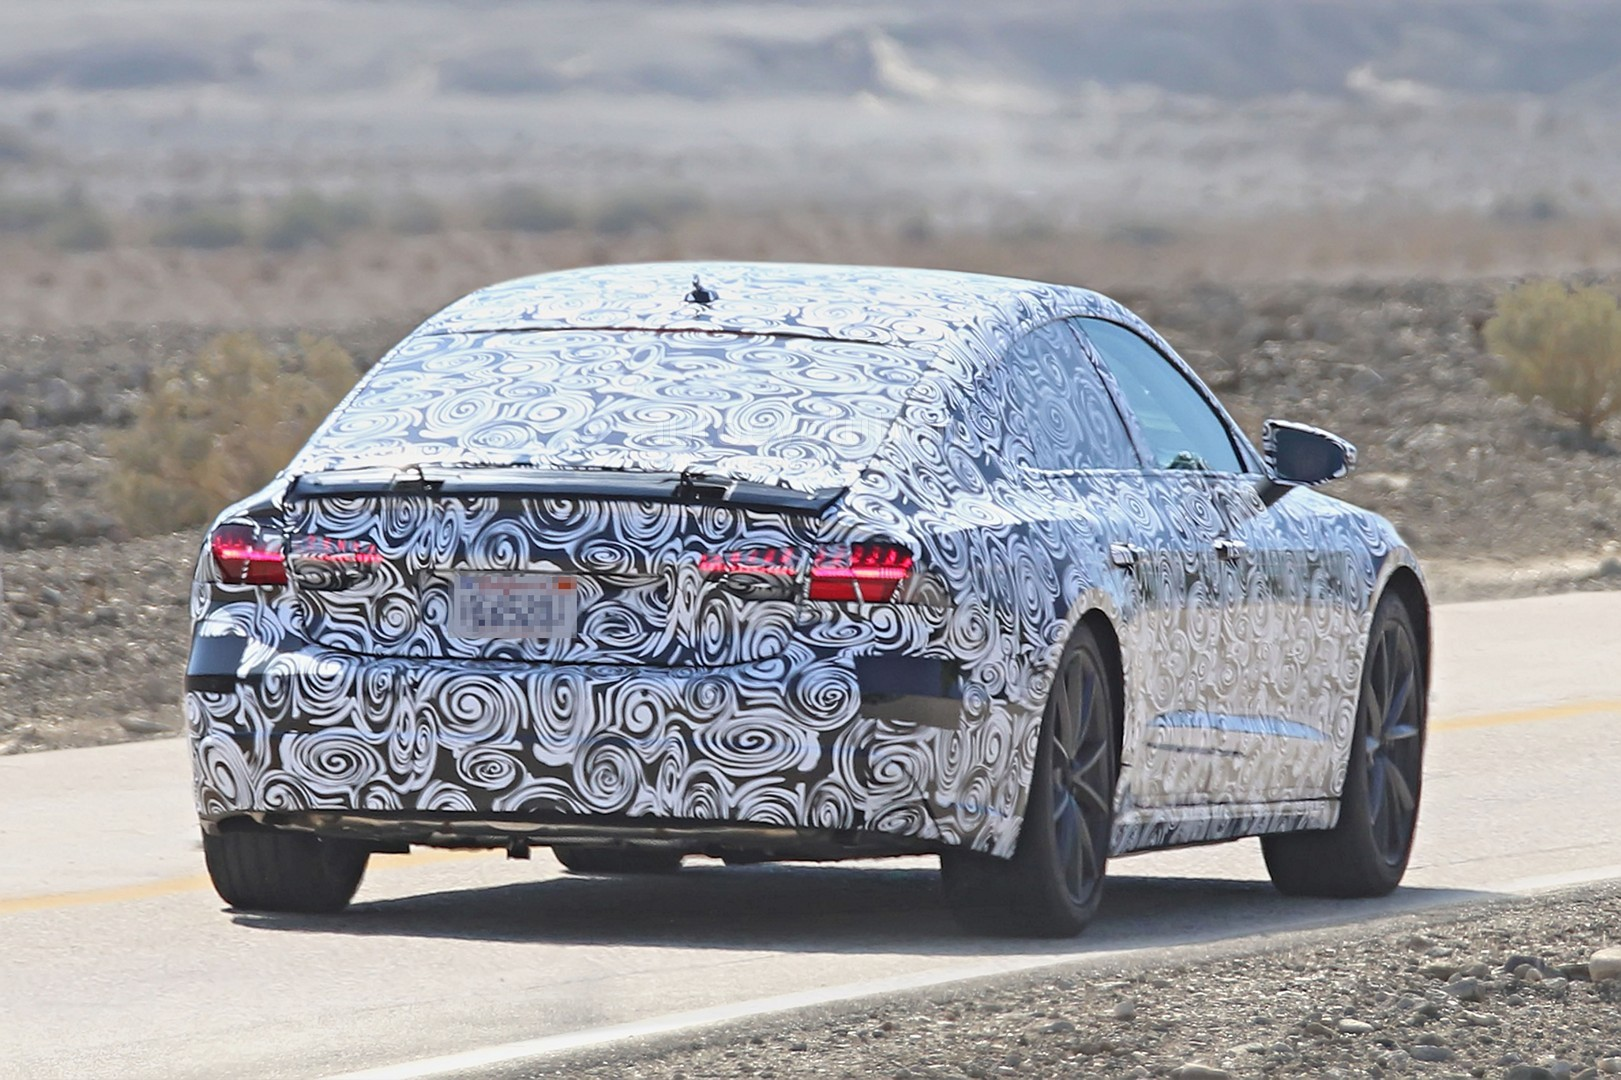 2018 Audi A7 Detailed Spy Photos Reveal It Could Be Electric or ...